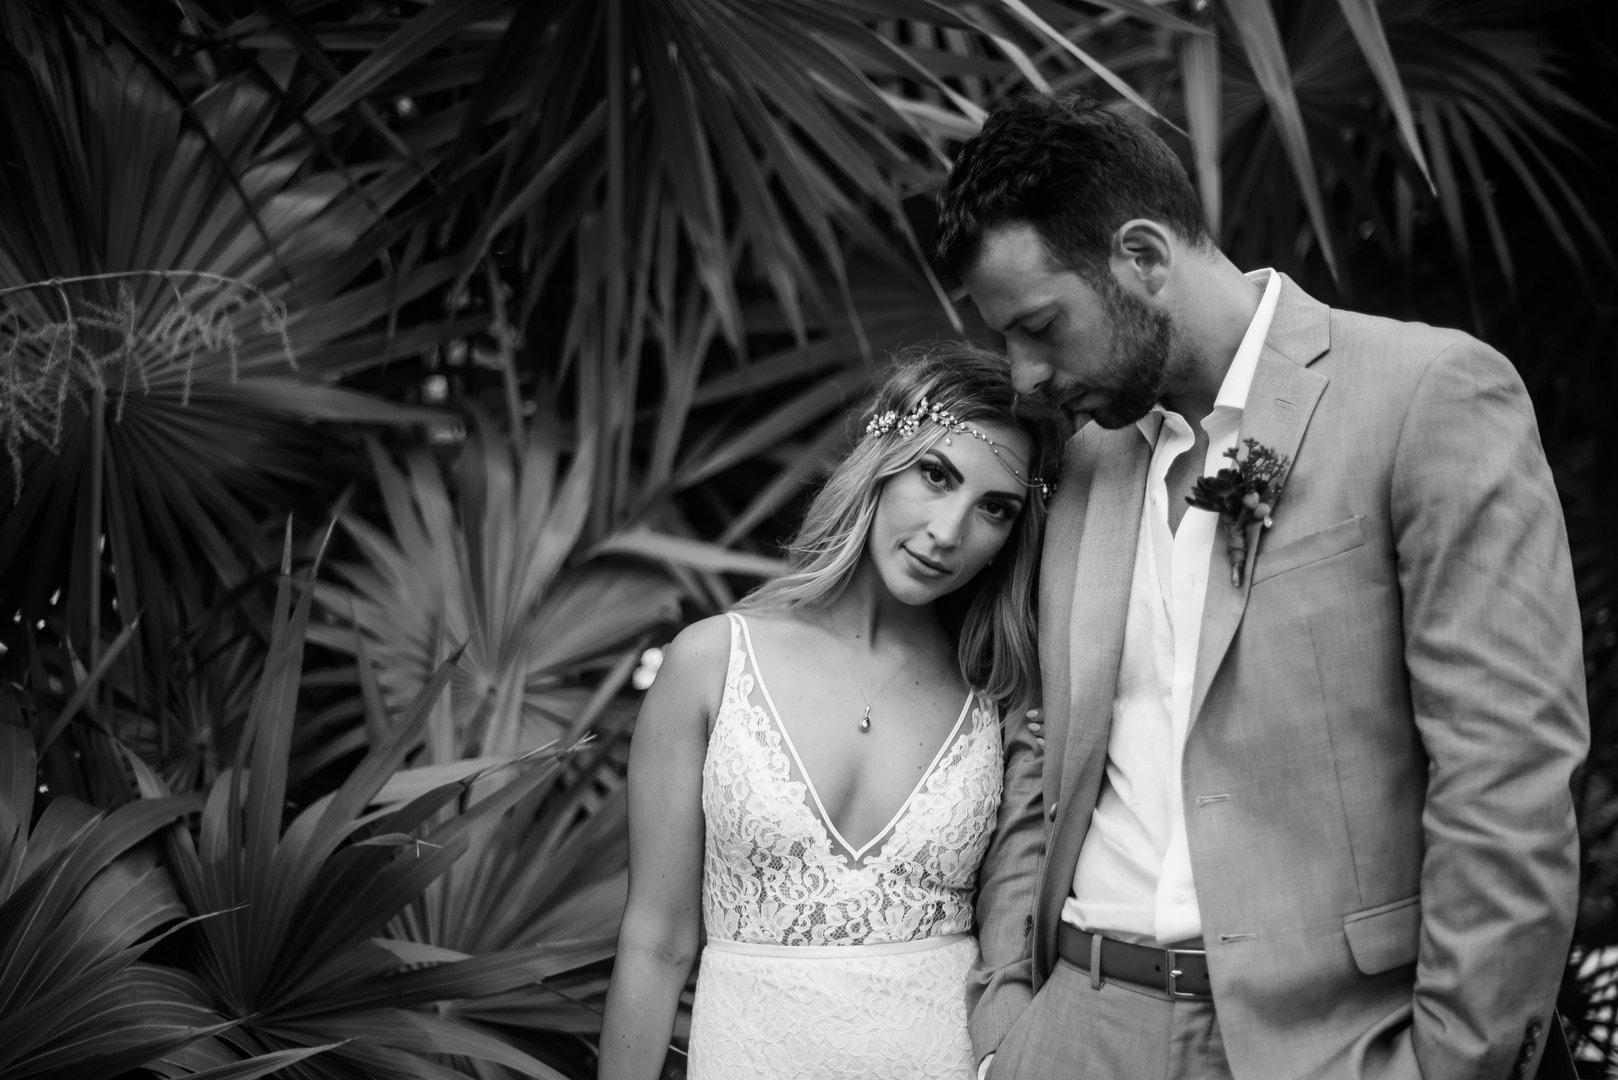 Jackie & Tyler's Bohemian, Industrial Inspired Destination Wedding, Photography by Dawn Derbyshire Photography for Destination Wedding Blog Adriana Weddings